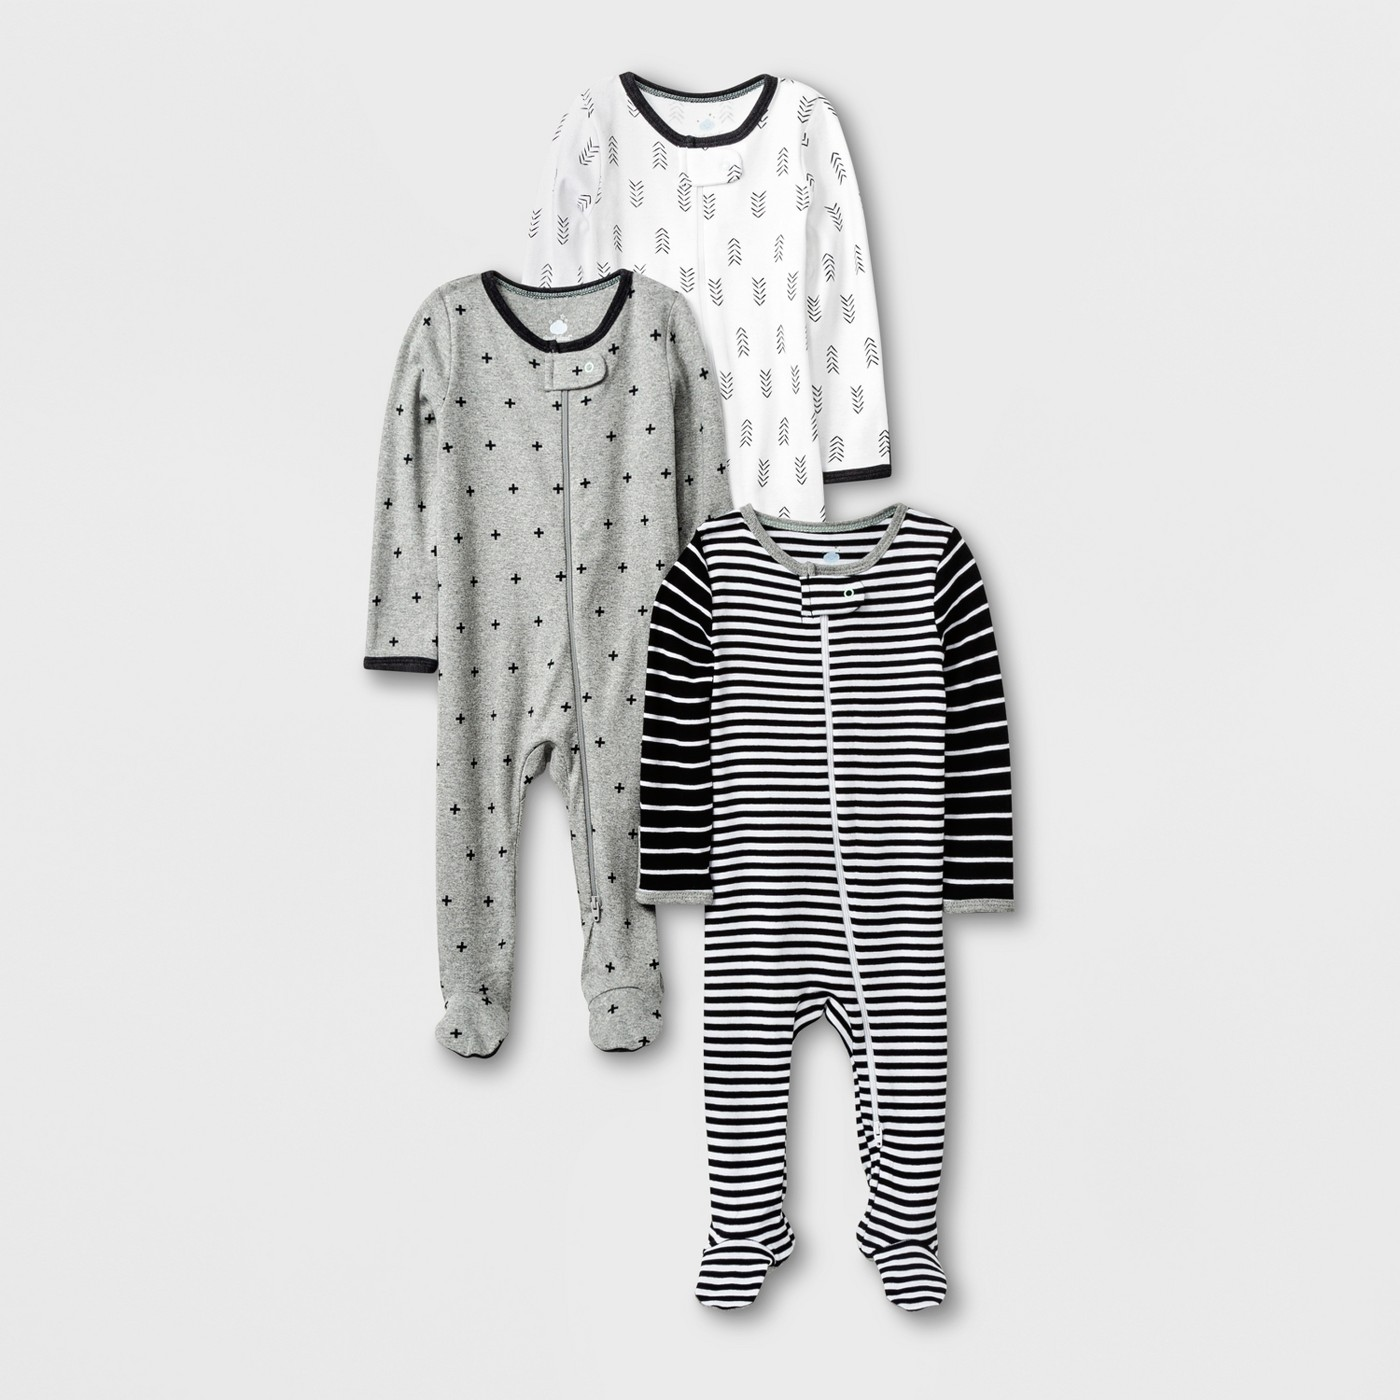 Baby 3pk Long Sleeve Footed Sleeper Set - Cloud Island™ Black/White/Gray - image 1 of 1